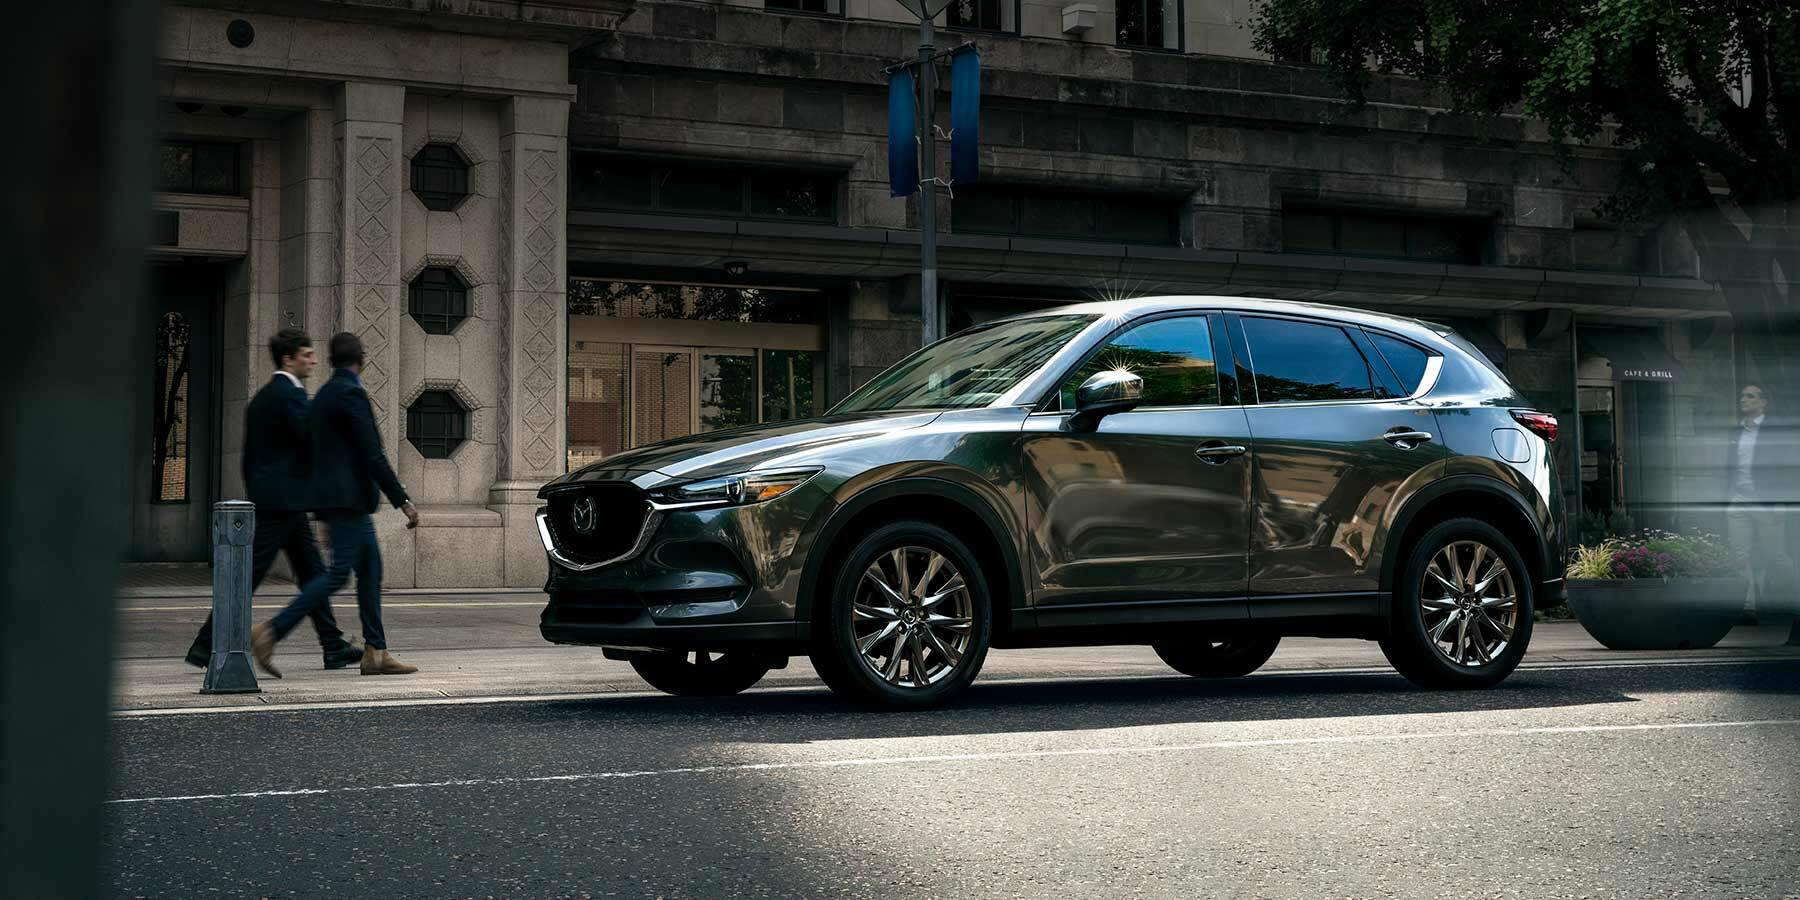 2019 Mazda CX-5 parked on a city street